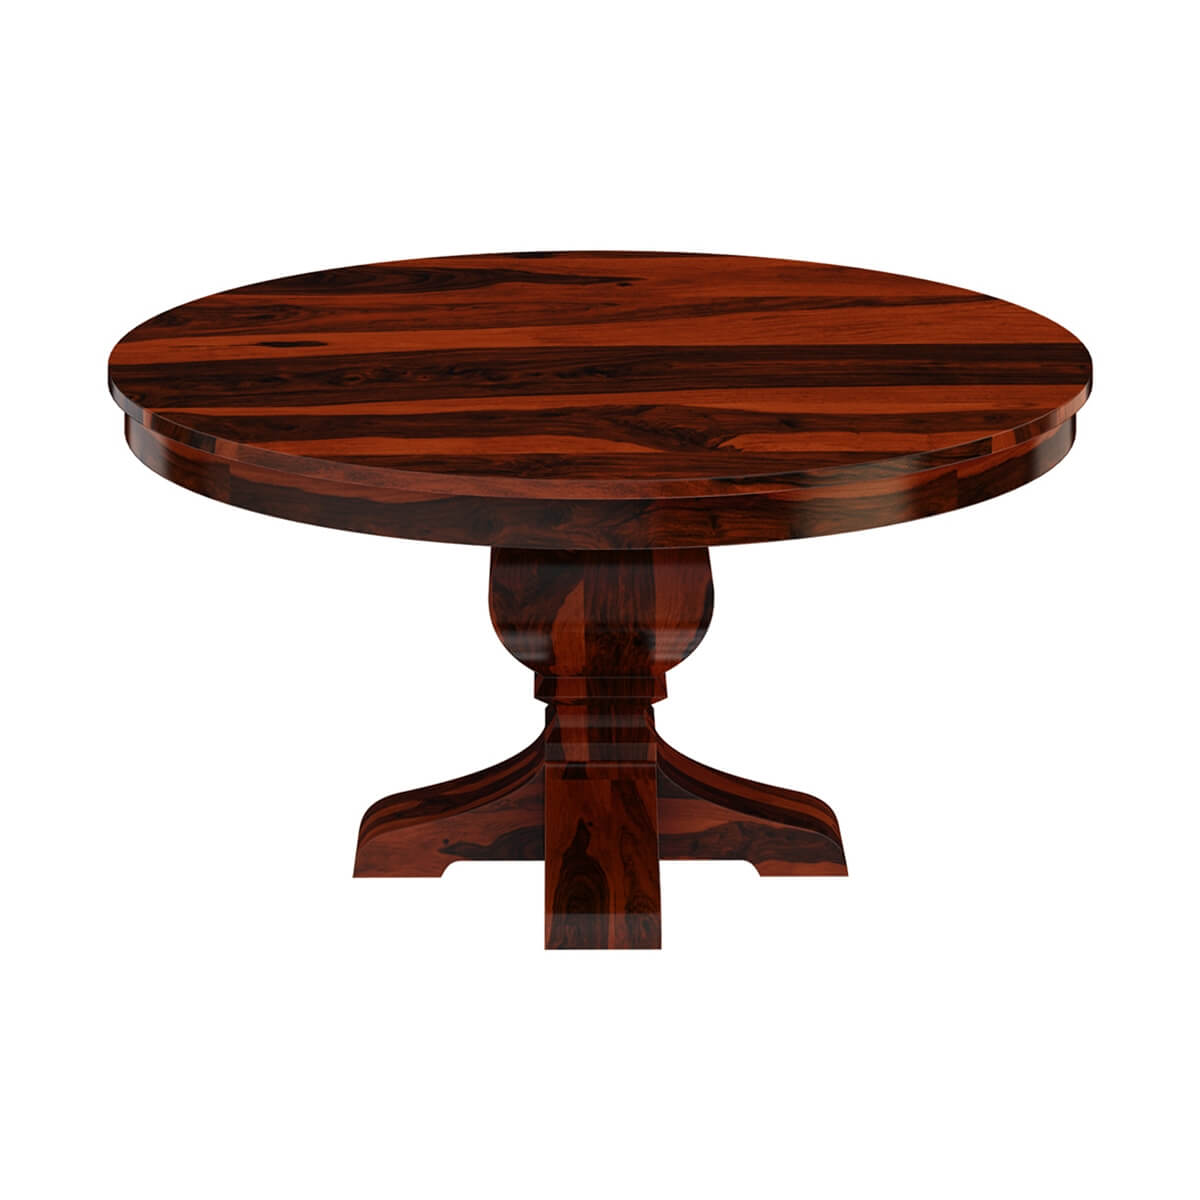 missouri 60 solid wood round pedestal dining table. Black Bedroom Furniture Sets. Home Design Ideas